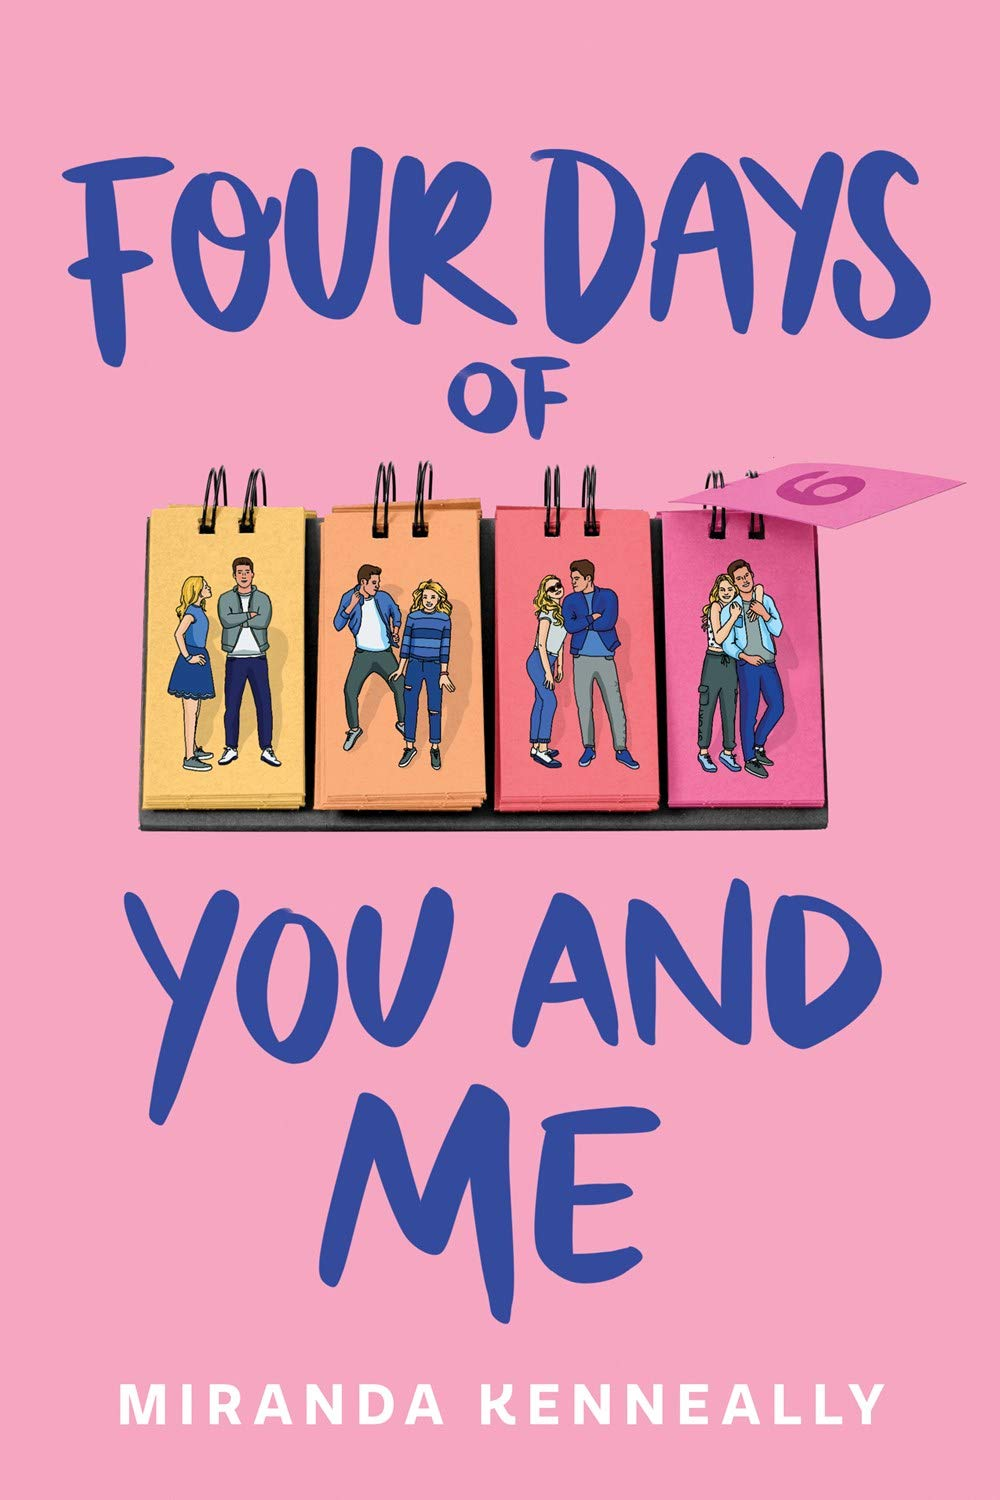 Amazon.com: Four Days of You and Me (9781492684138): Kenneally ...